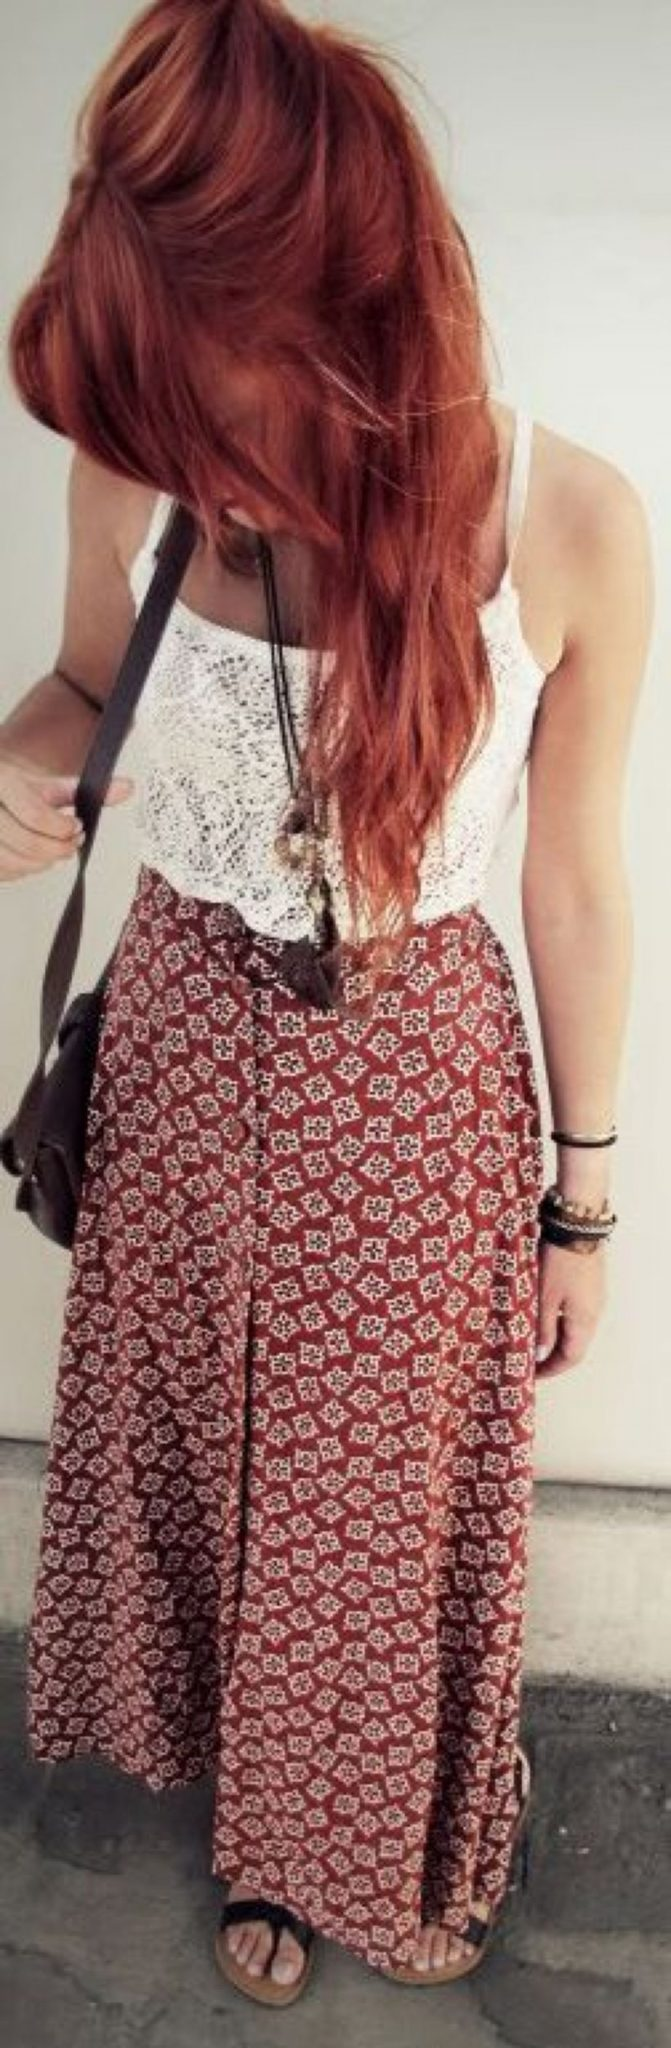 Vintage chic fashion outfits ideas 55